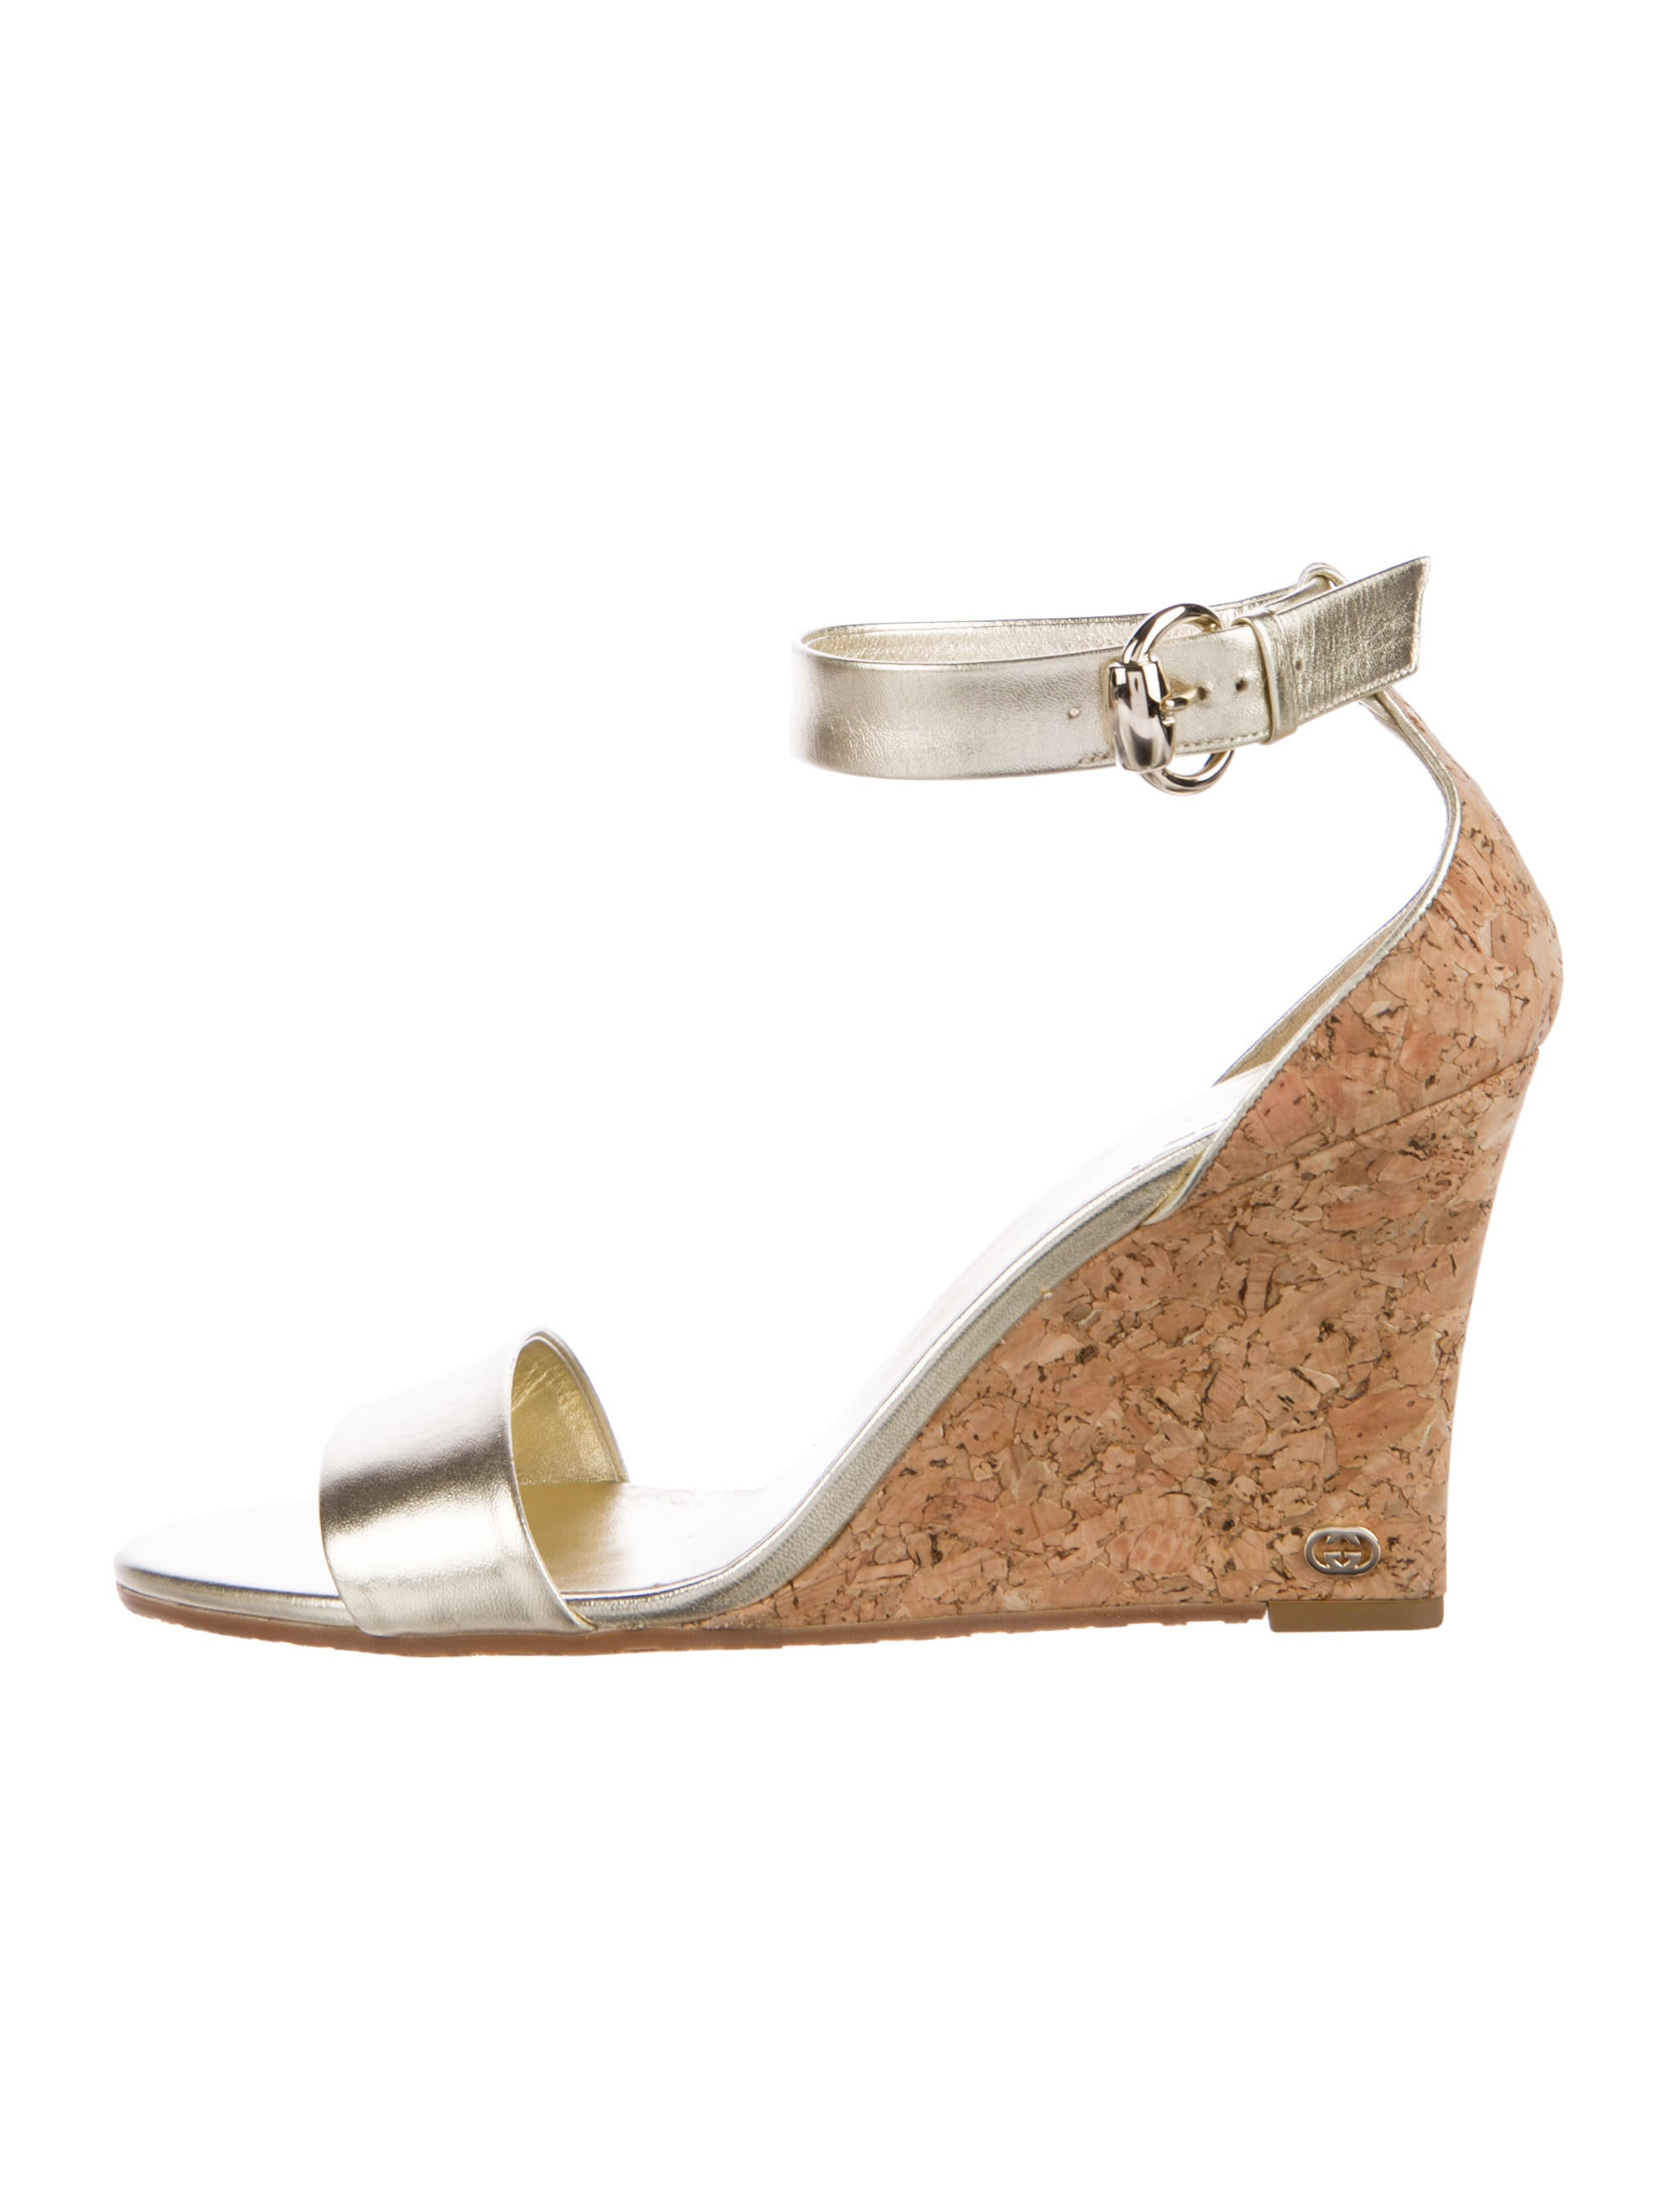 ff5aa181c93ef7 Gucci Metallic Leather Wedges - Shoes - GUC164646